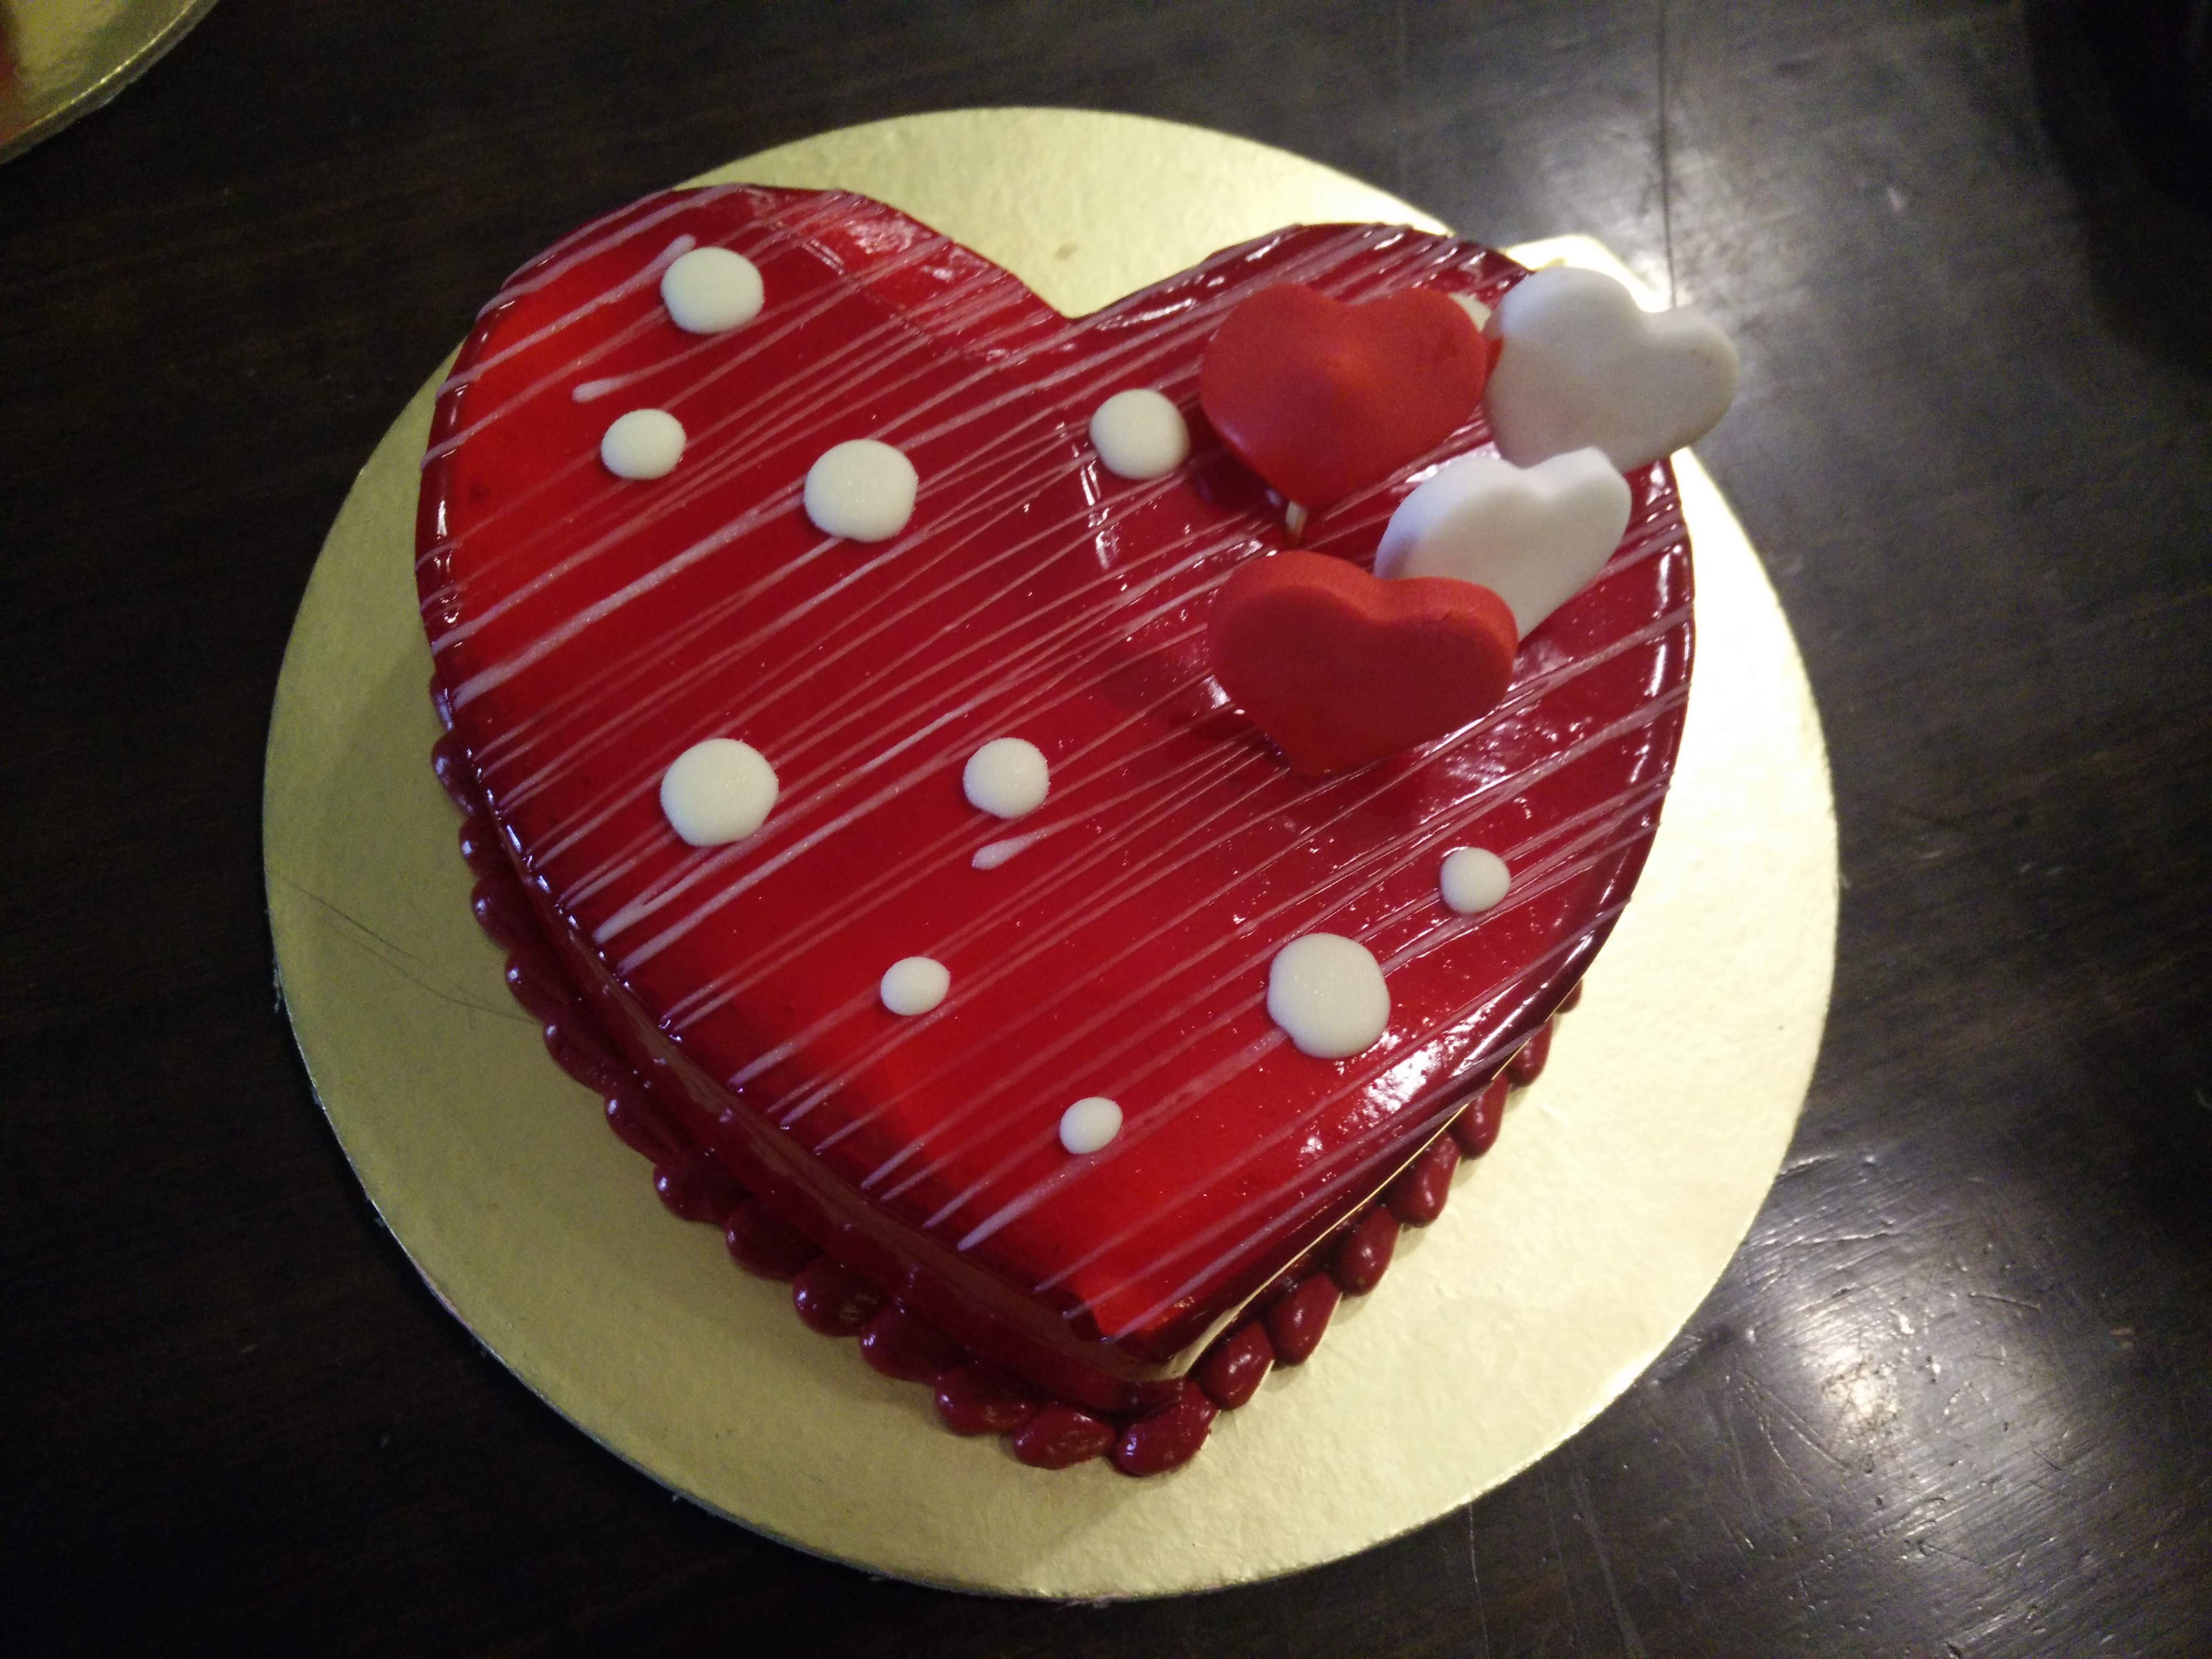 Valentines Day special cakes at El Posto All About Women